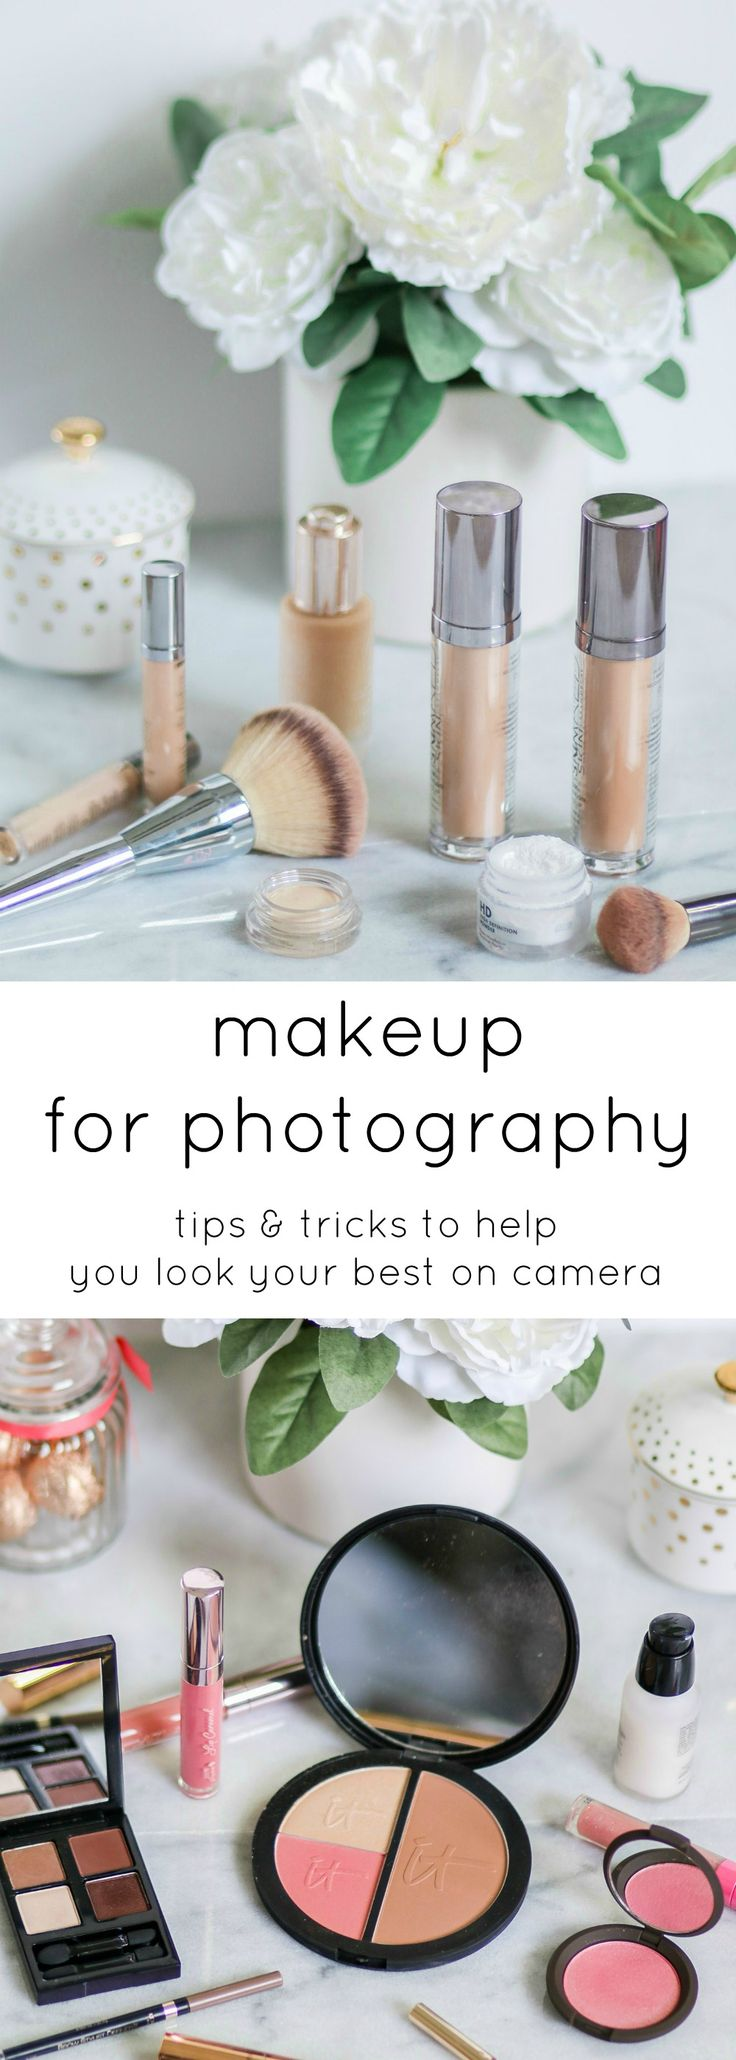 Makeup for everyday and makeup for photography aren't always the same thing. HD cameras pick up little detail and every tiny flaw in your makeup, but thankfully I've picked up a few tips from professional makeup artists that will help you look picture-perfect in front of the camera! Click through this pin to learn my favorite makeup tips for photography with @crest ! | by @ashleynicholas | Sponsored by #crest